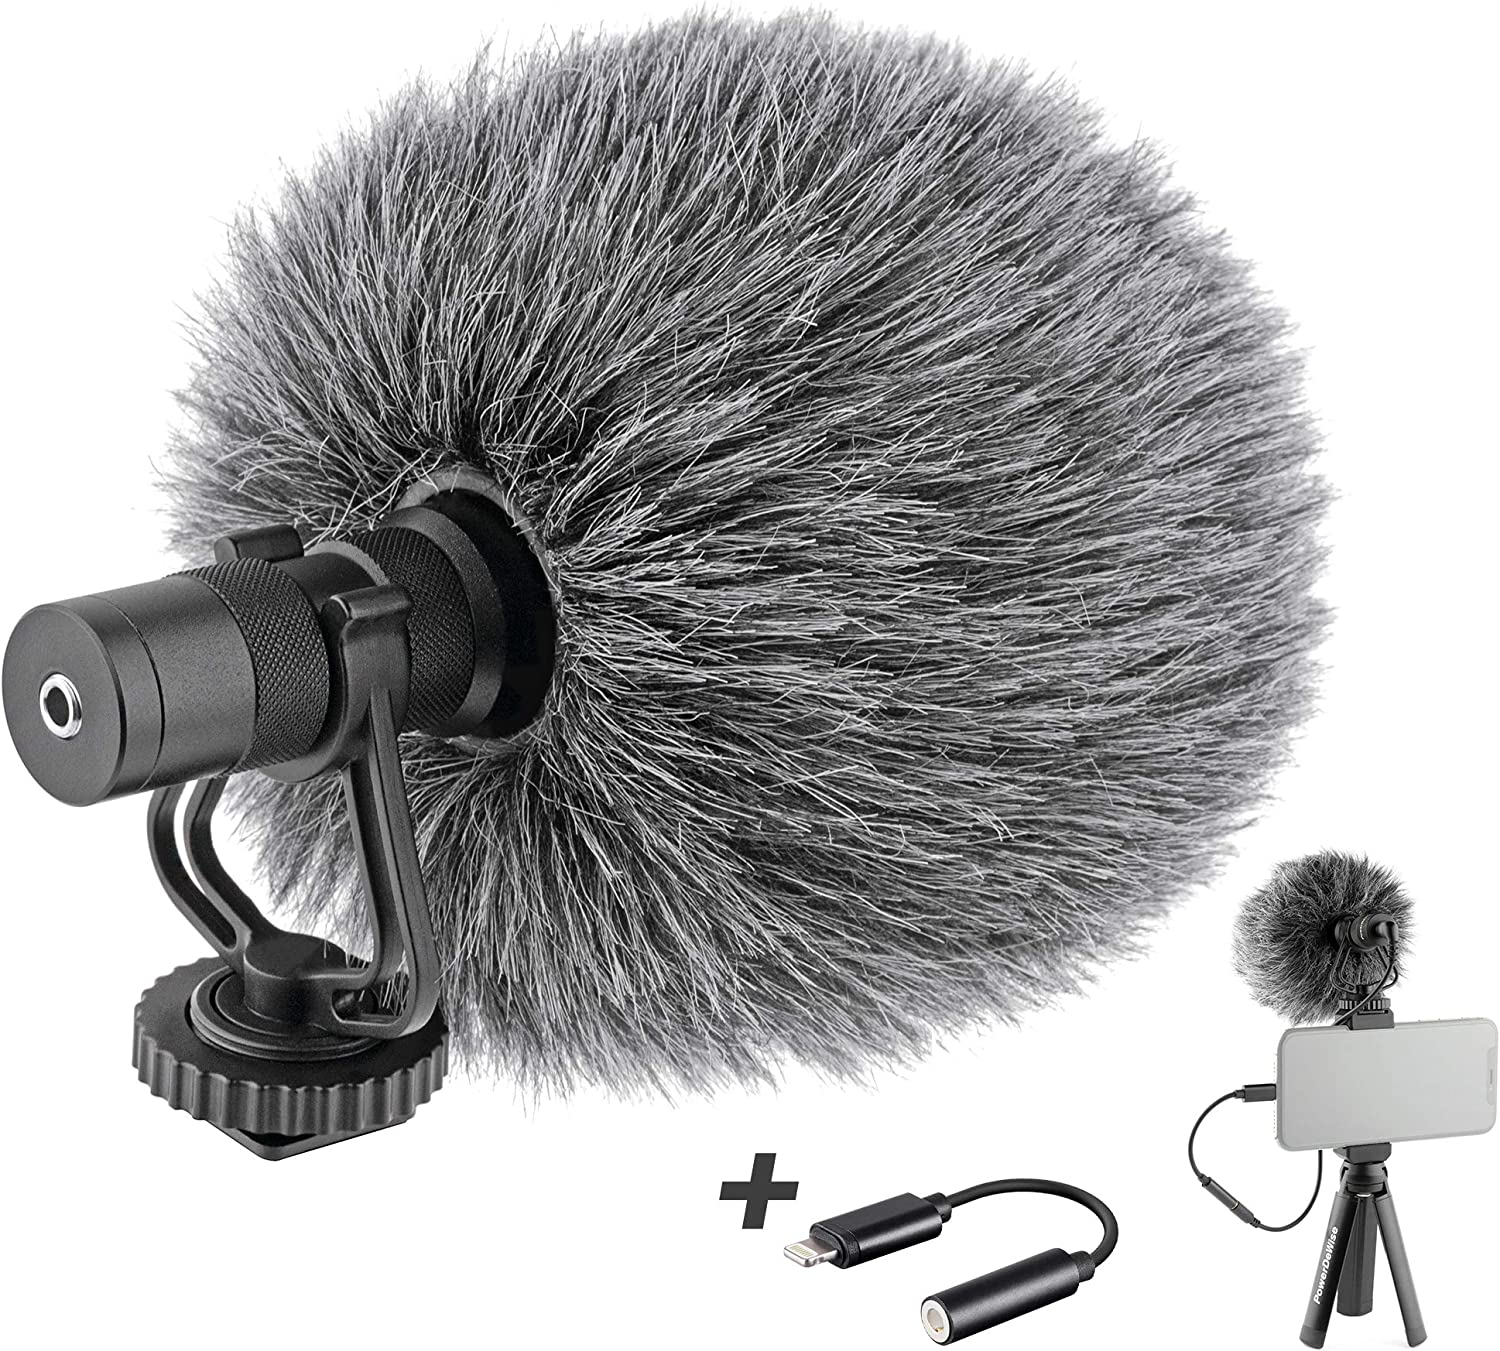 Video Microphone with Adapter - Unidirectional On-Camera Microphone for iPhone - Directional Cardioid iPhone Microphone for Video Recording